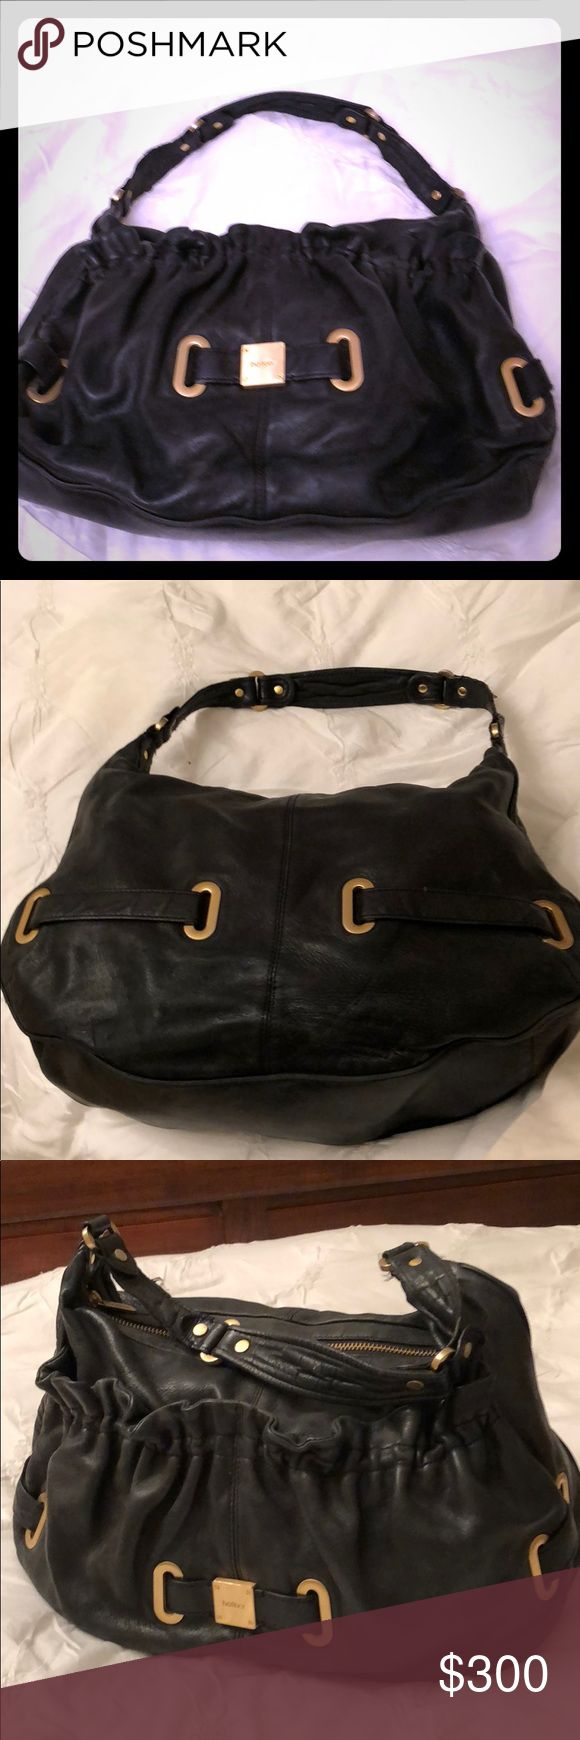 Botkier black leather handbag Super soft Botkier leather slouchy style handbag from Sacks Fifth Avenue. zipper top. Outside and inside pockets. Gold and leather accents Botkier Bags